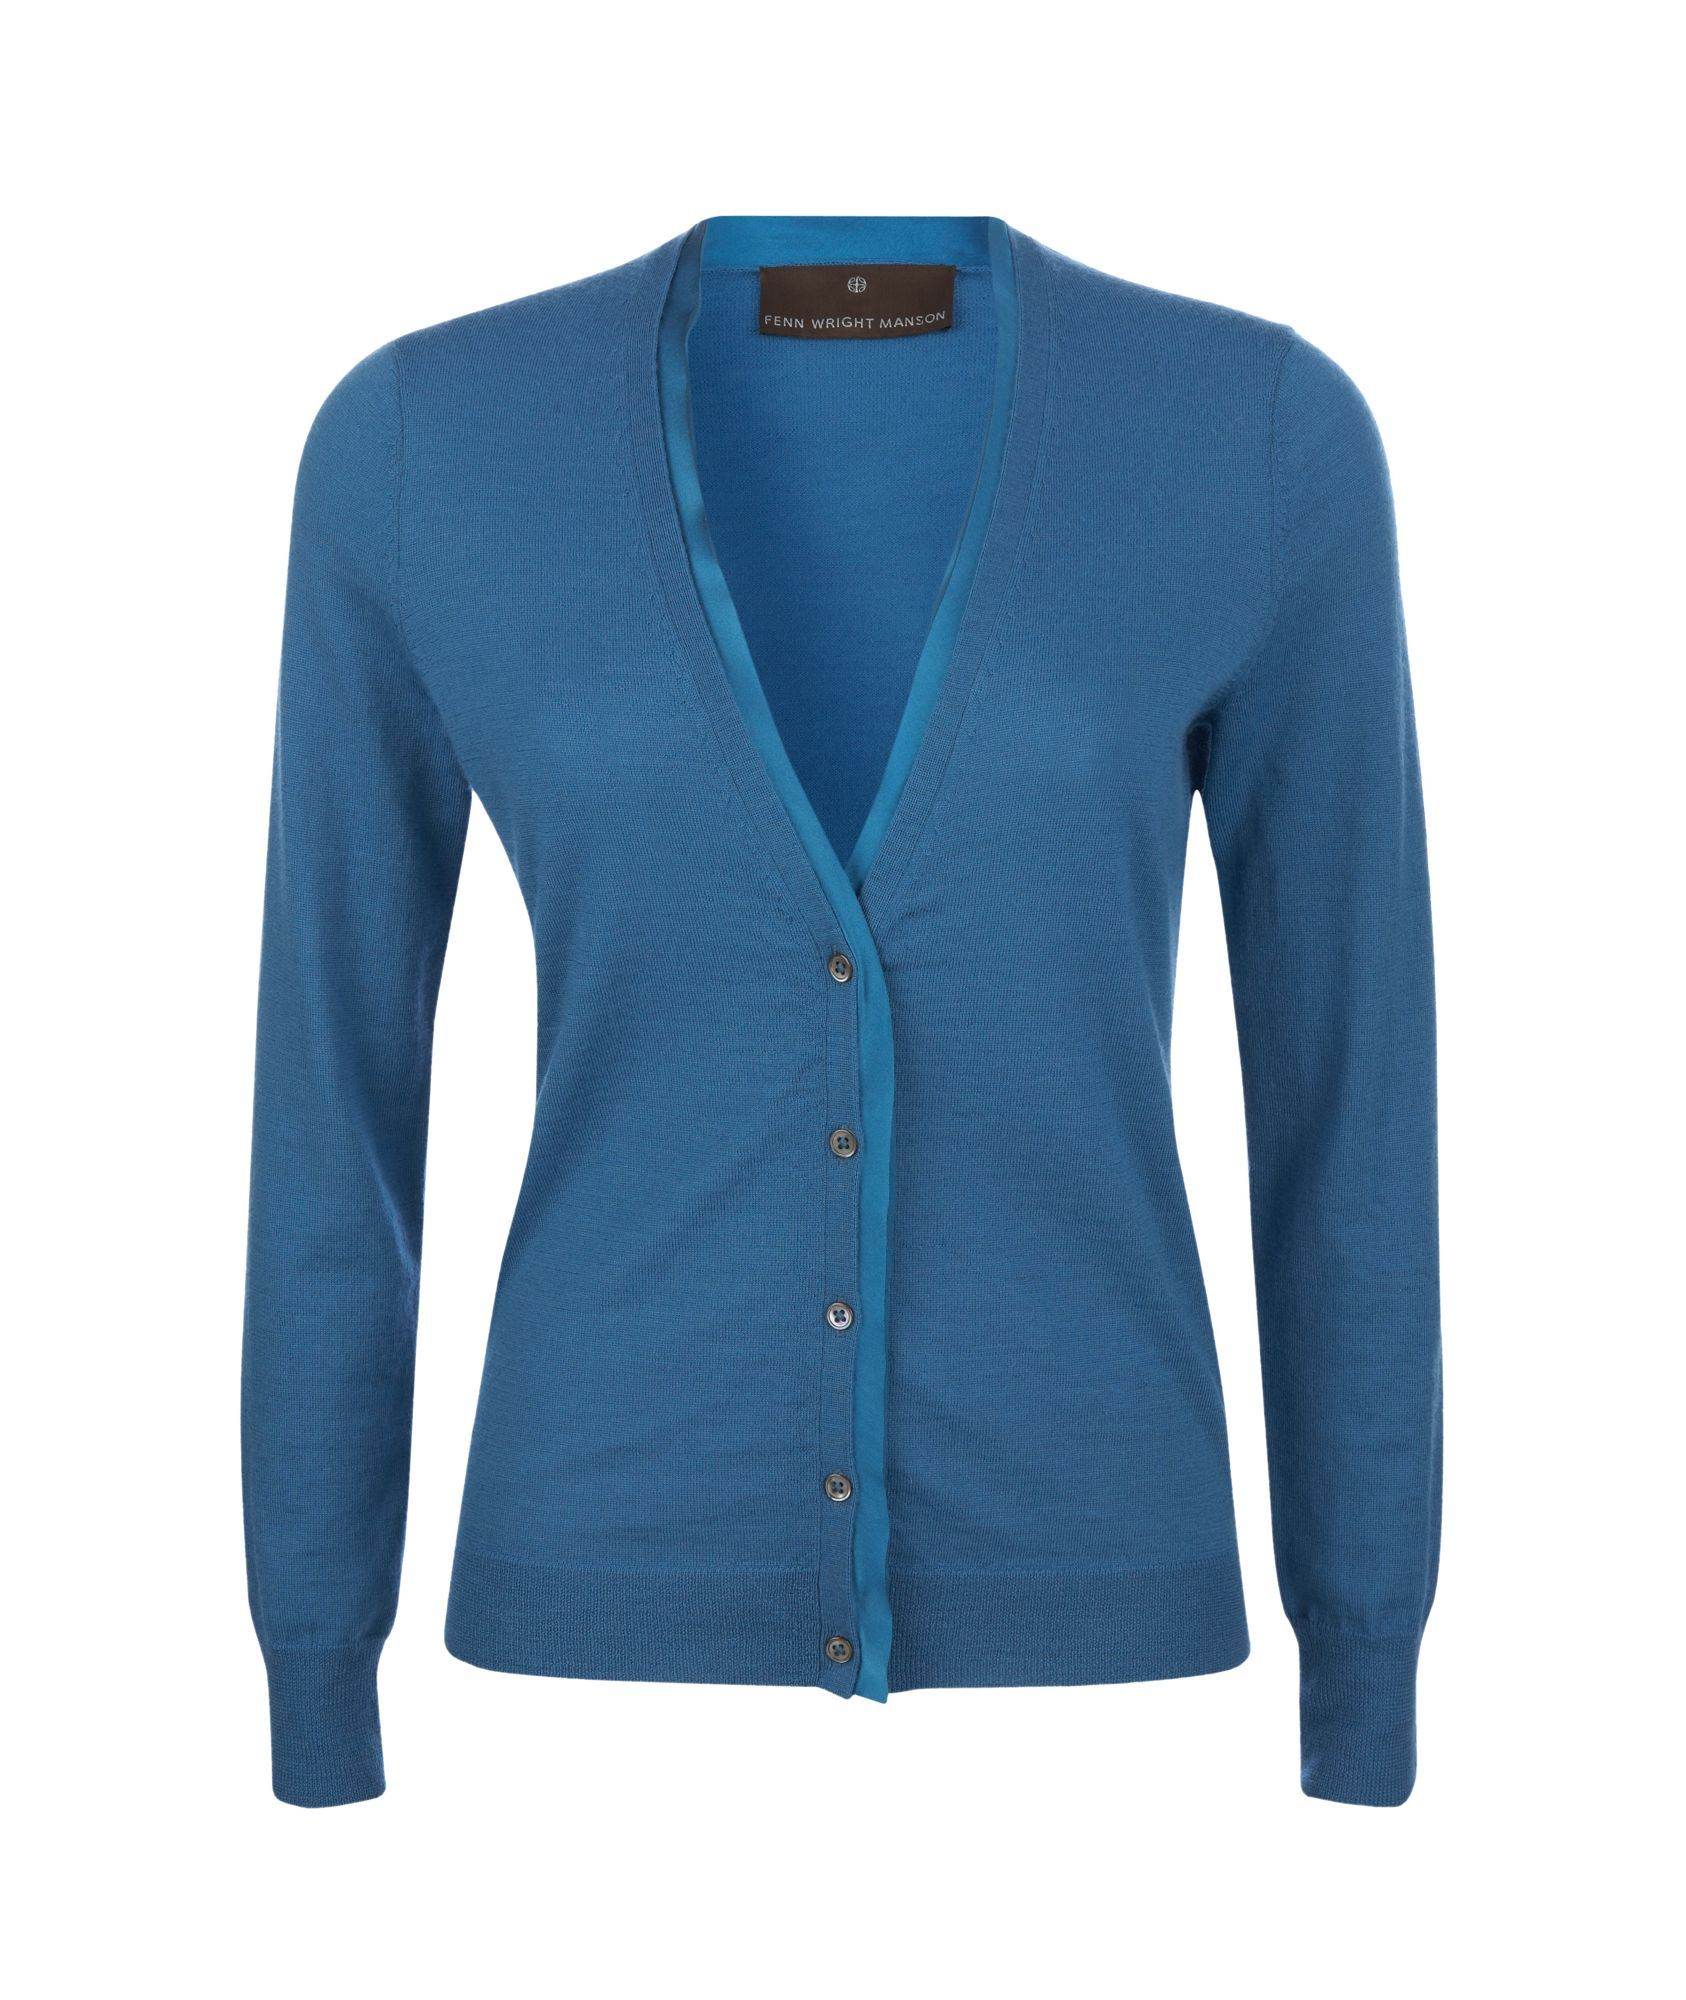 Women's Merino Silk Trim Cardi, Lagoon - neckline: v-neck; pattern: plain; bust detail: buttons at bust (in middle at breastbone)/zip detail at bust; predominant colour: royal blue; occasions: casual; length: standard; style: standard; trends: knitwear; fibres: wool - 100%; fit: standard fit; sleeve length: long sleeve; sleeve style: standard; pattern type: knitted - other; pattern size: standard